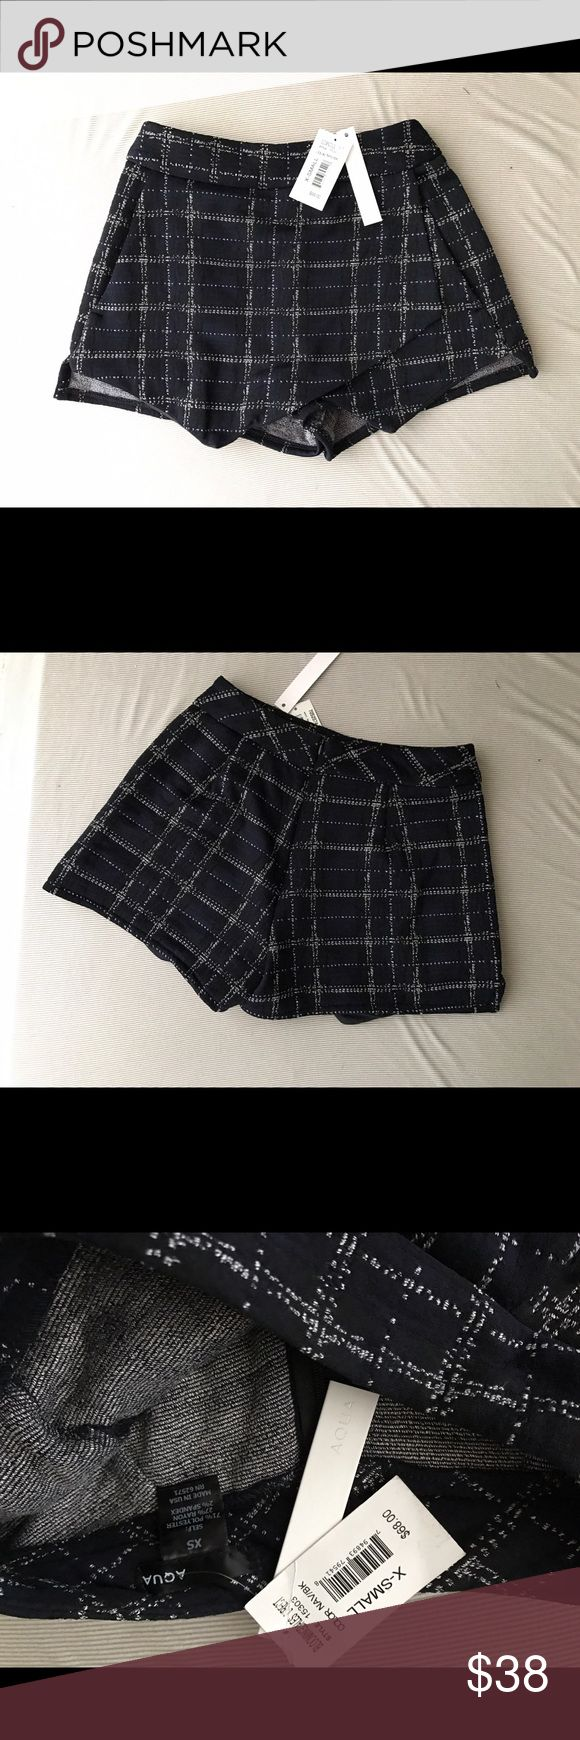 """Navy Black Plaid High Waisted Skort Short Skirt XS fits 00-1 or 23-25"""" waist, my waist is 25"""" or size 1 and it's a little tight so maybe perfect for 24"""" Aqua Shorts Skorts"""